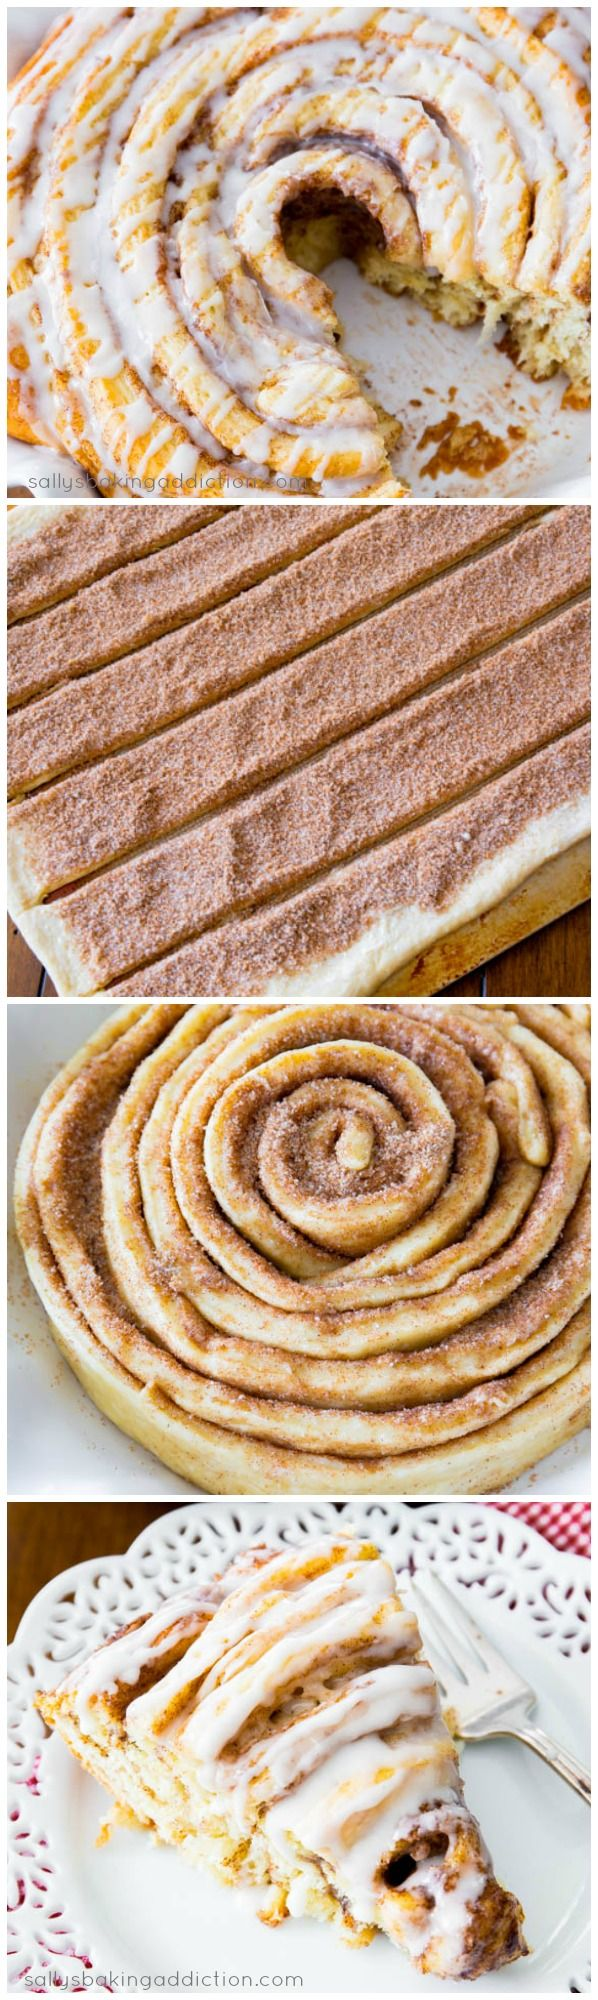 Learn how to make a Giant Cinnamon Roll Cake. Love this huge cinnamon roll!